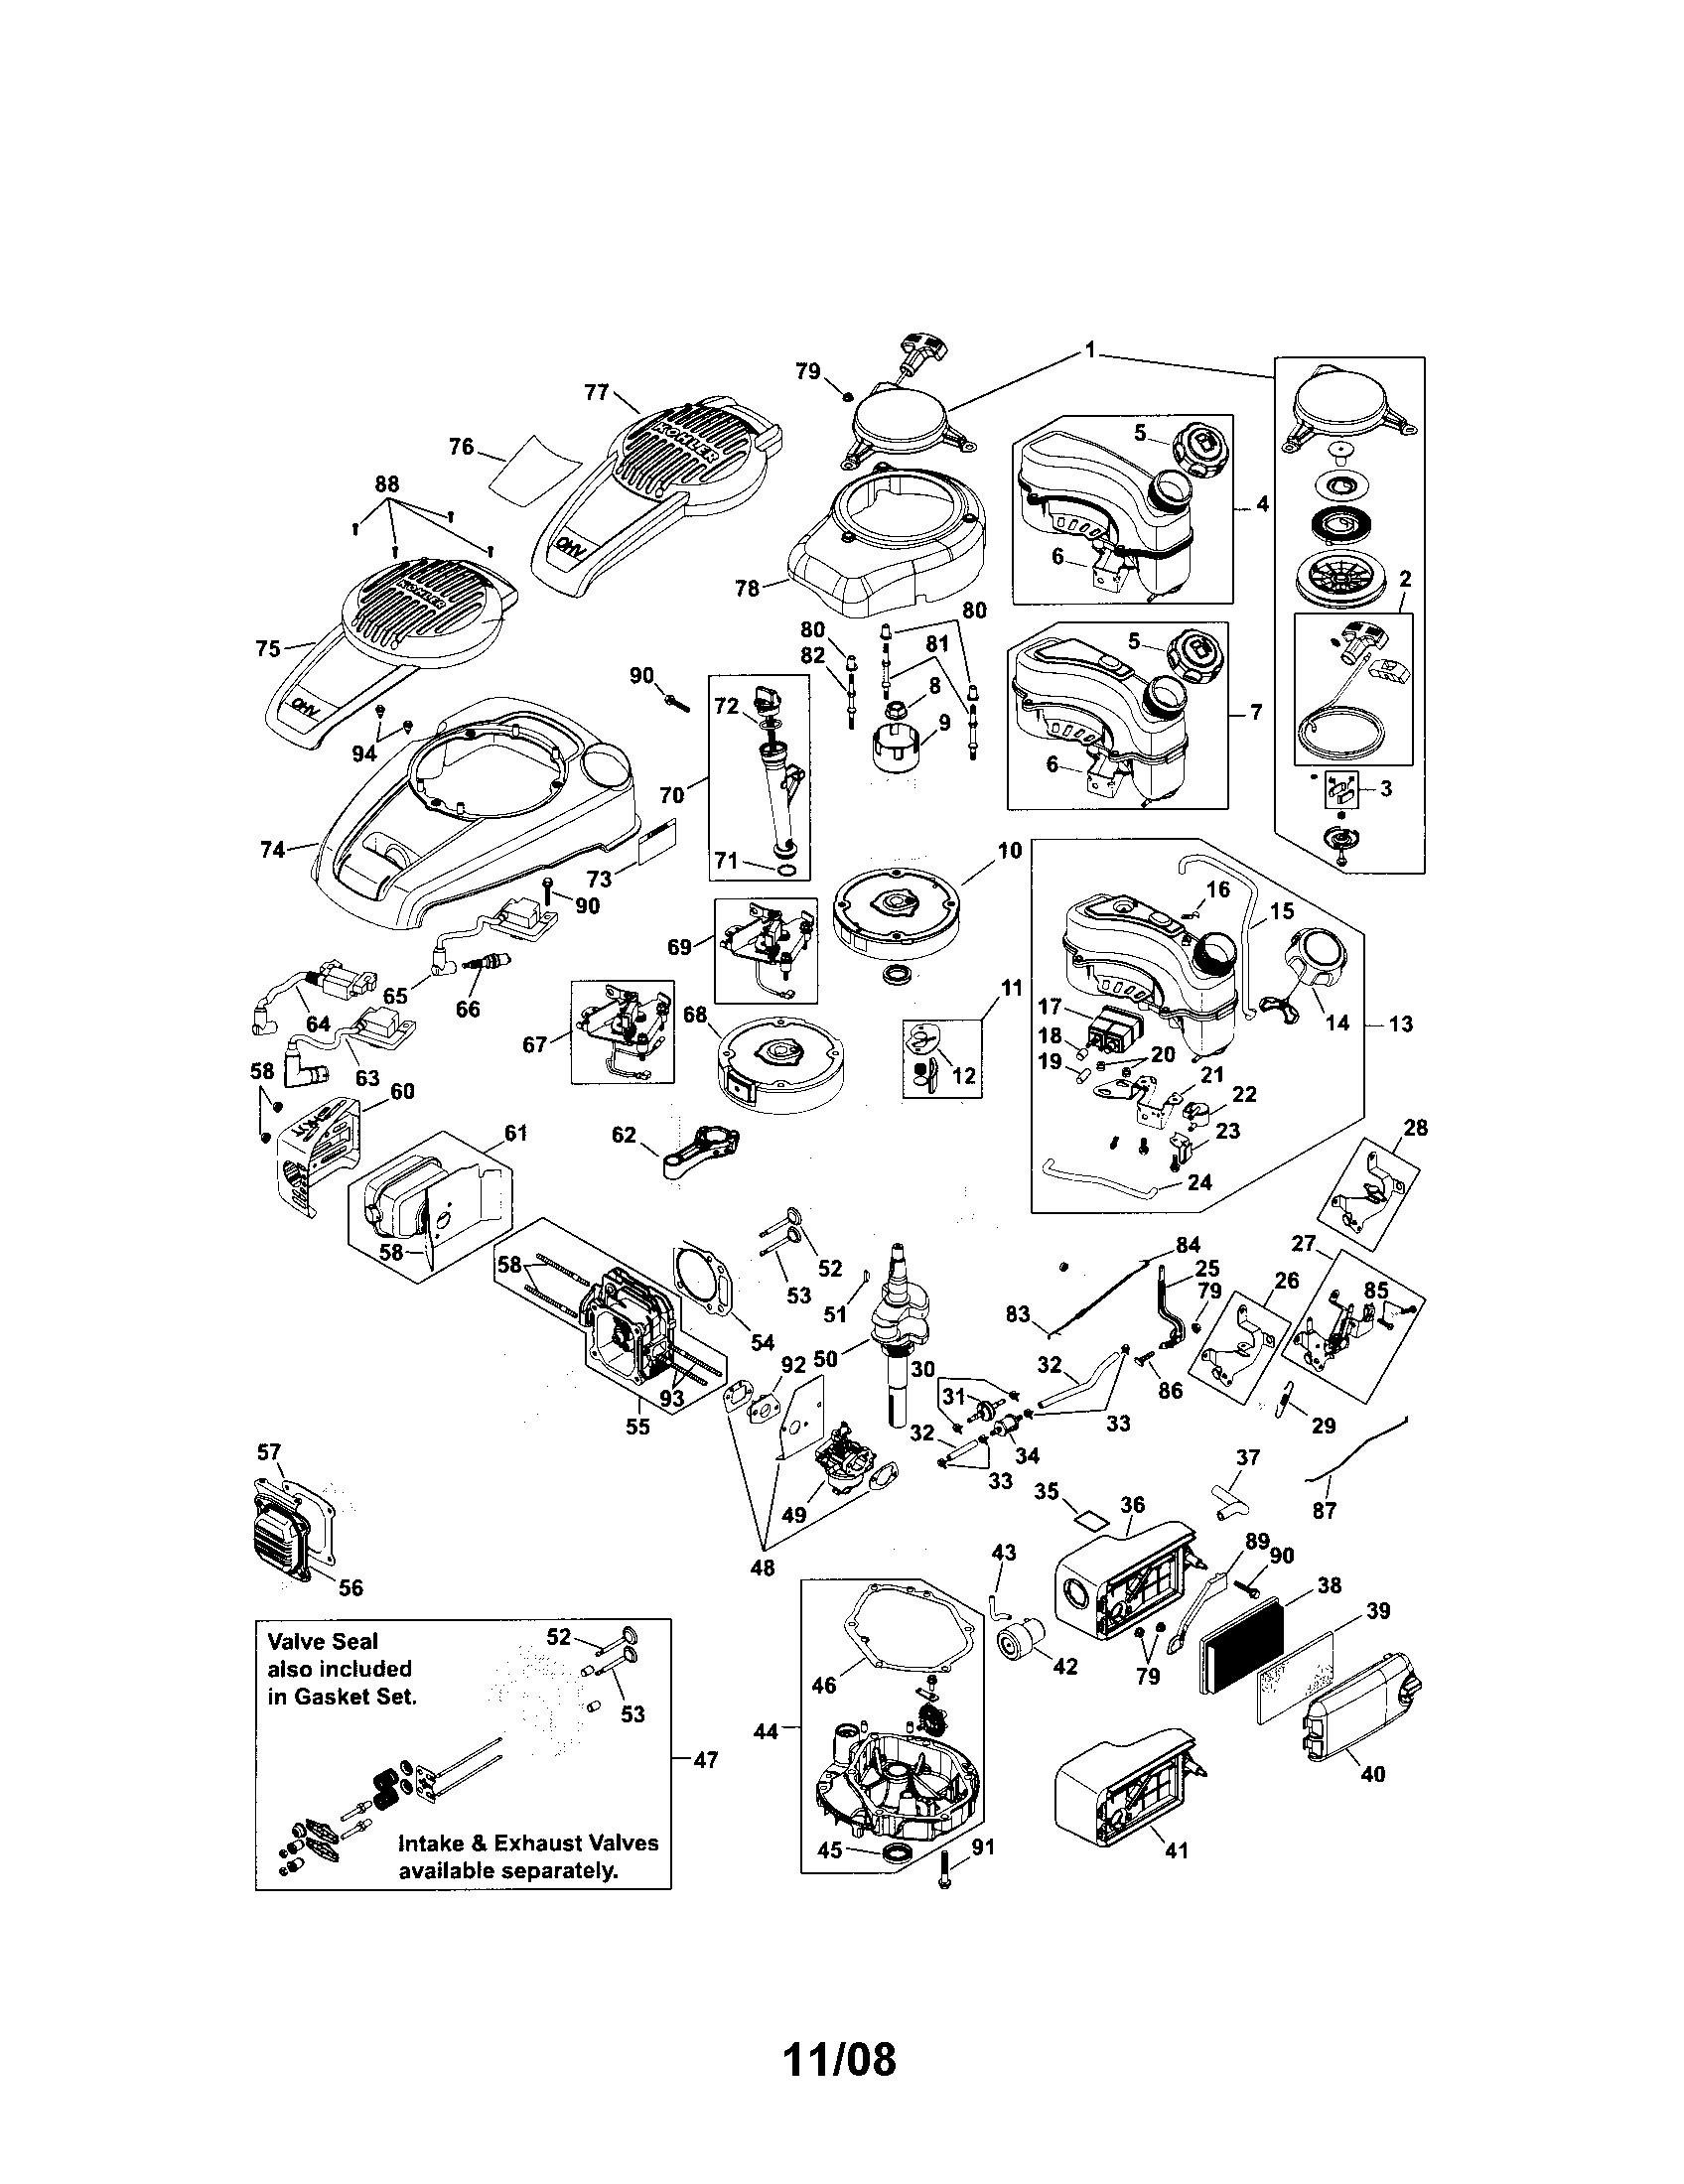 Kohler K321 Engine Diagram S | Wiring Library